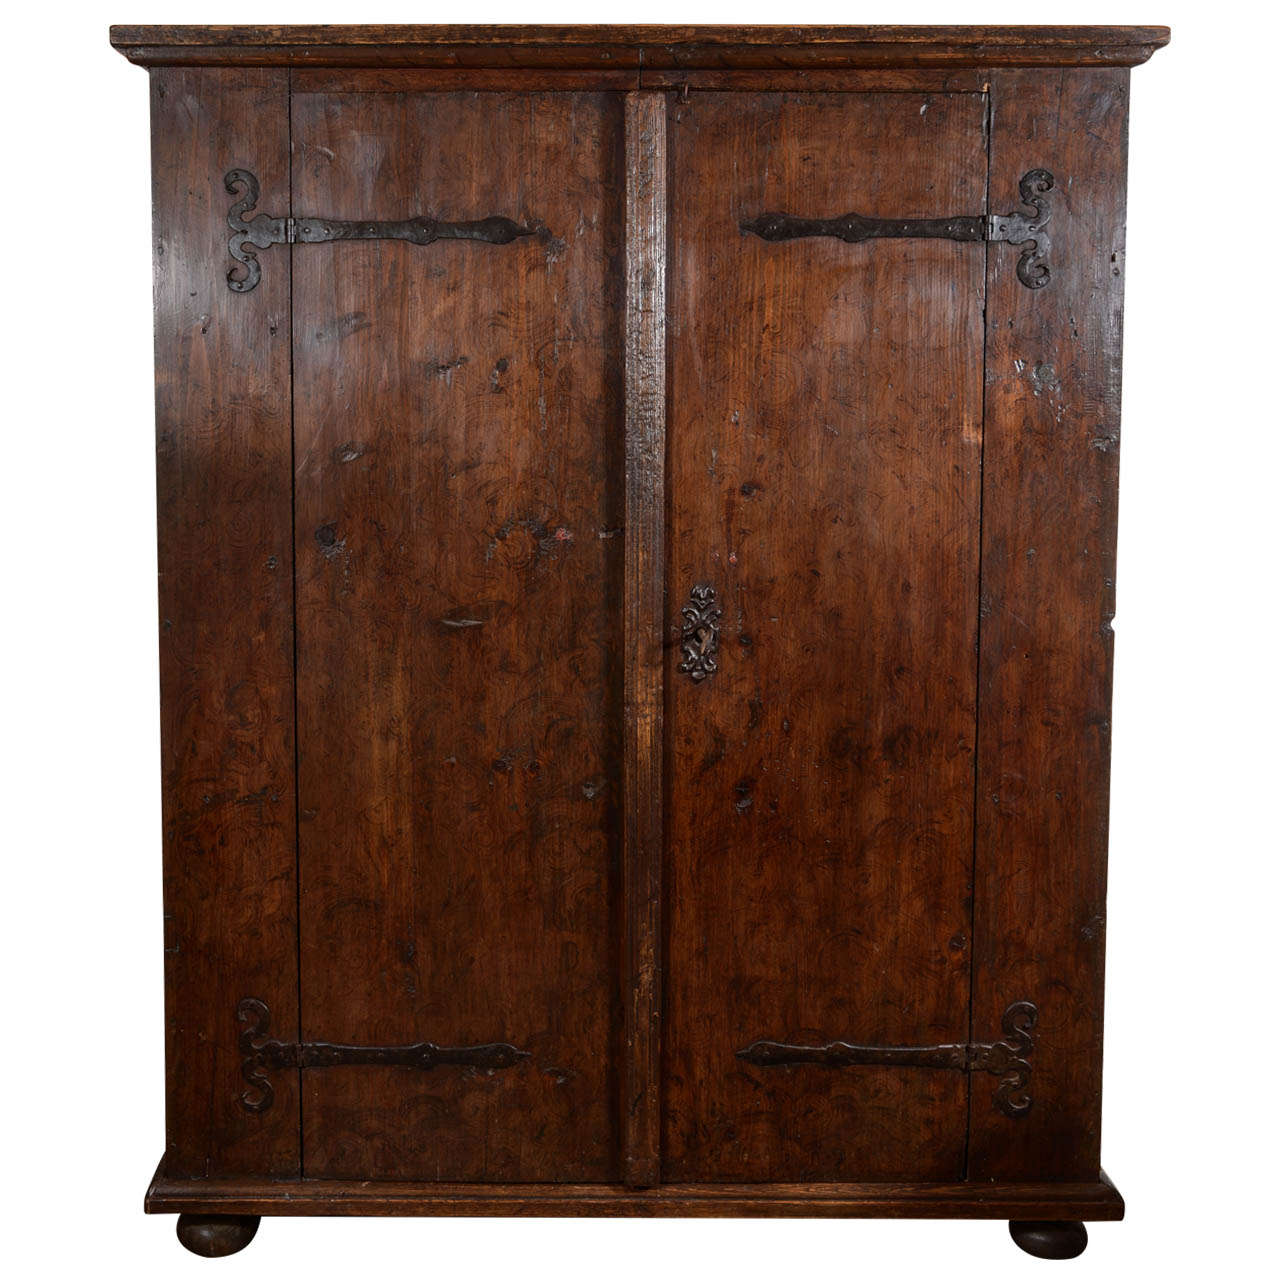 Delicieux 17th Century Rustic German Armoire For Sale